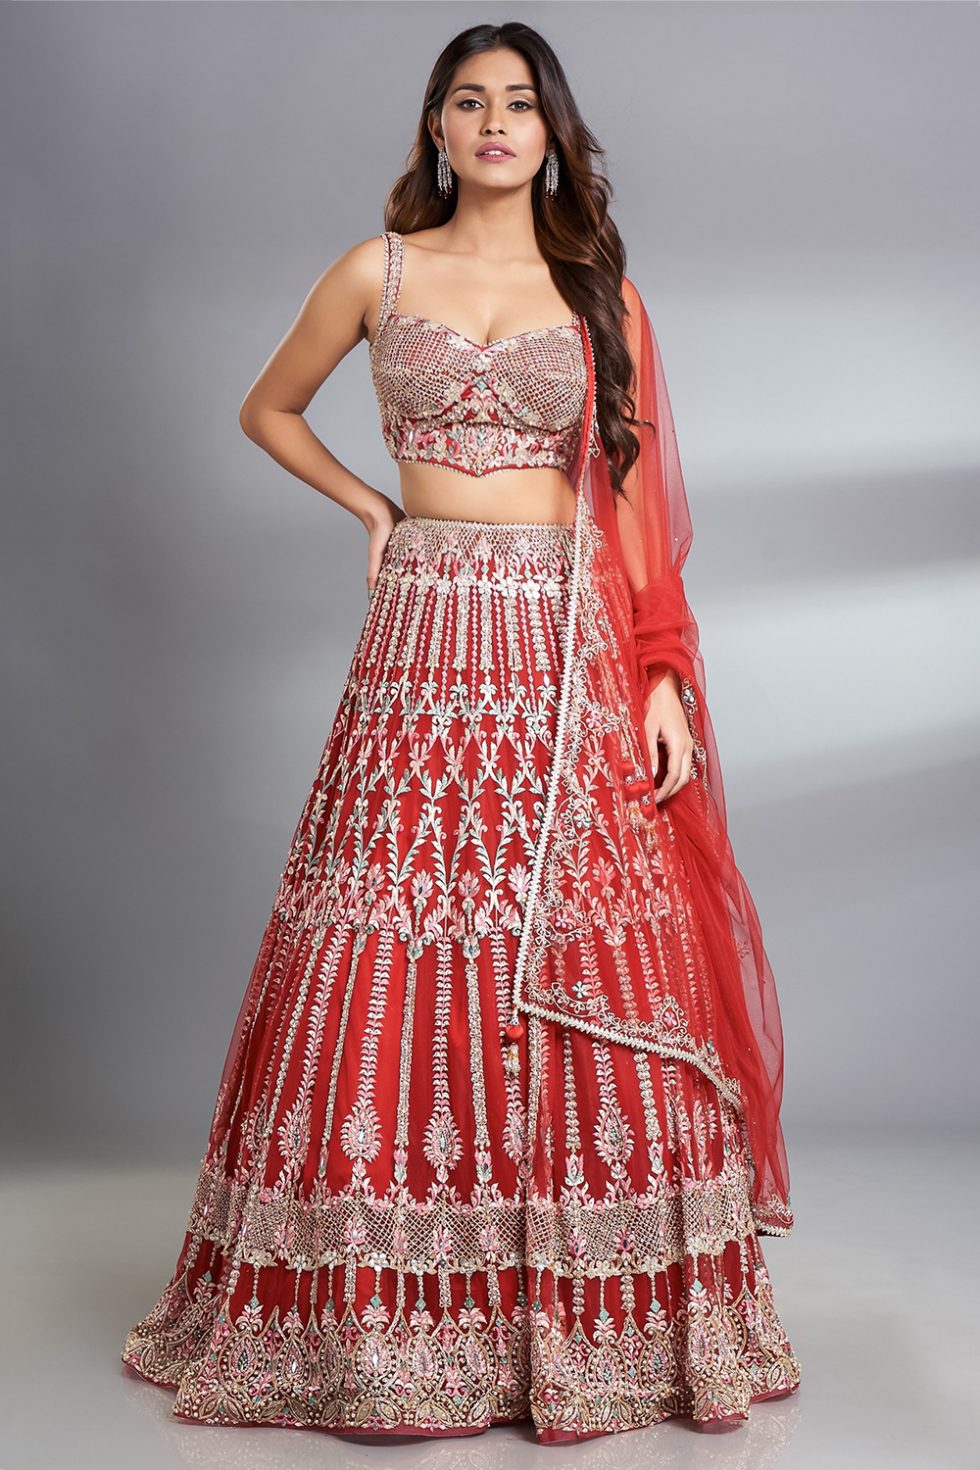 Fiery red lehenga set with multi coloured thread work and silver highlights paired with a corset cut blouse and a matching dupatta.